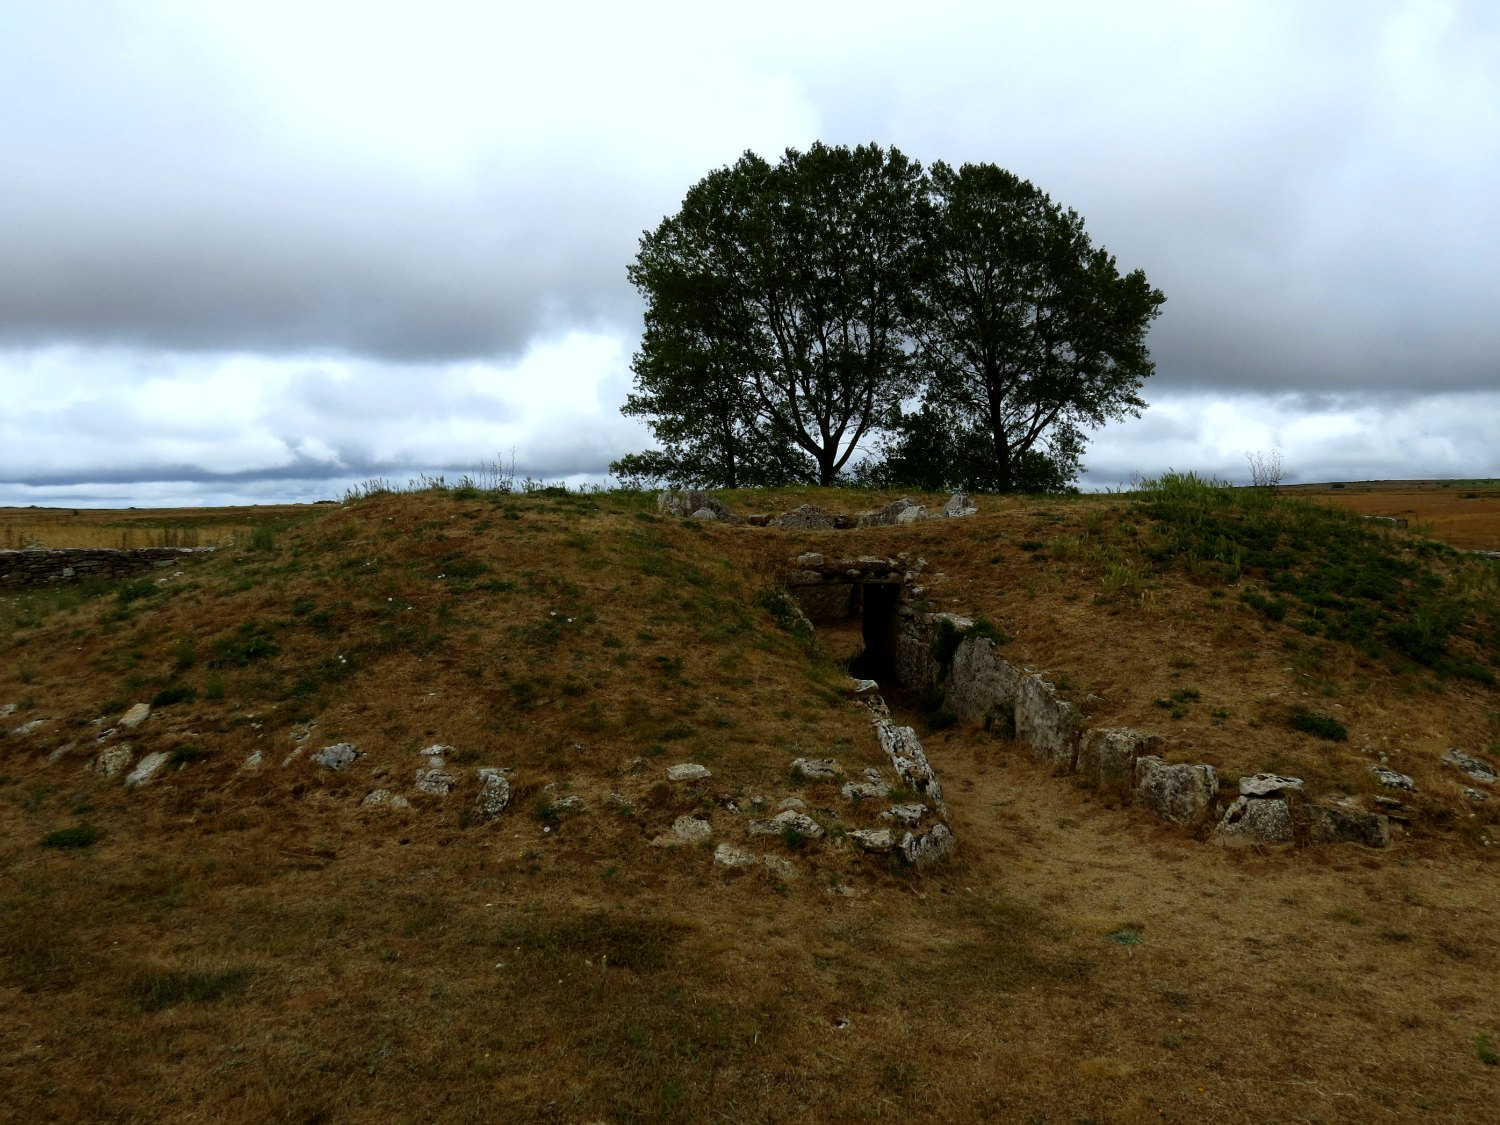 Neolithic burial sites